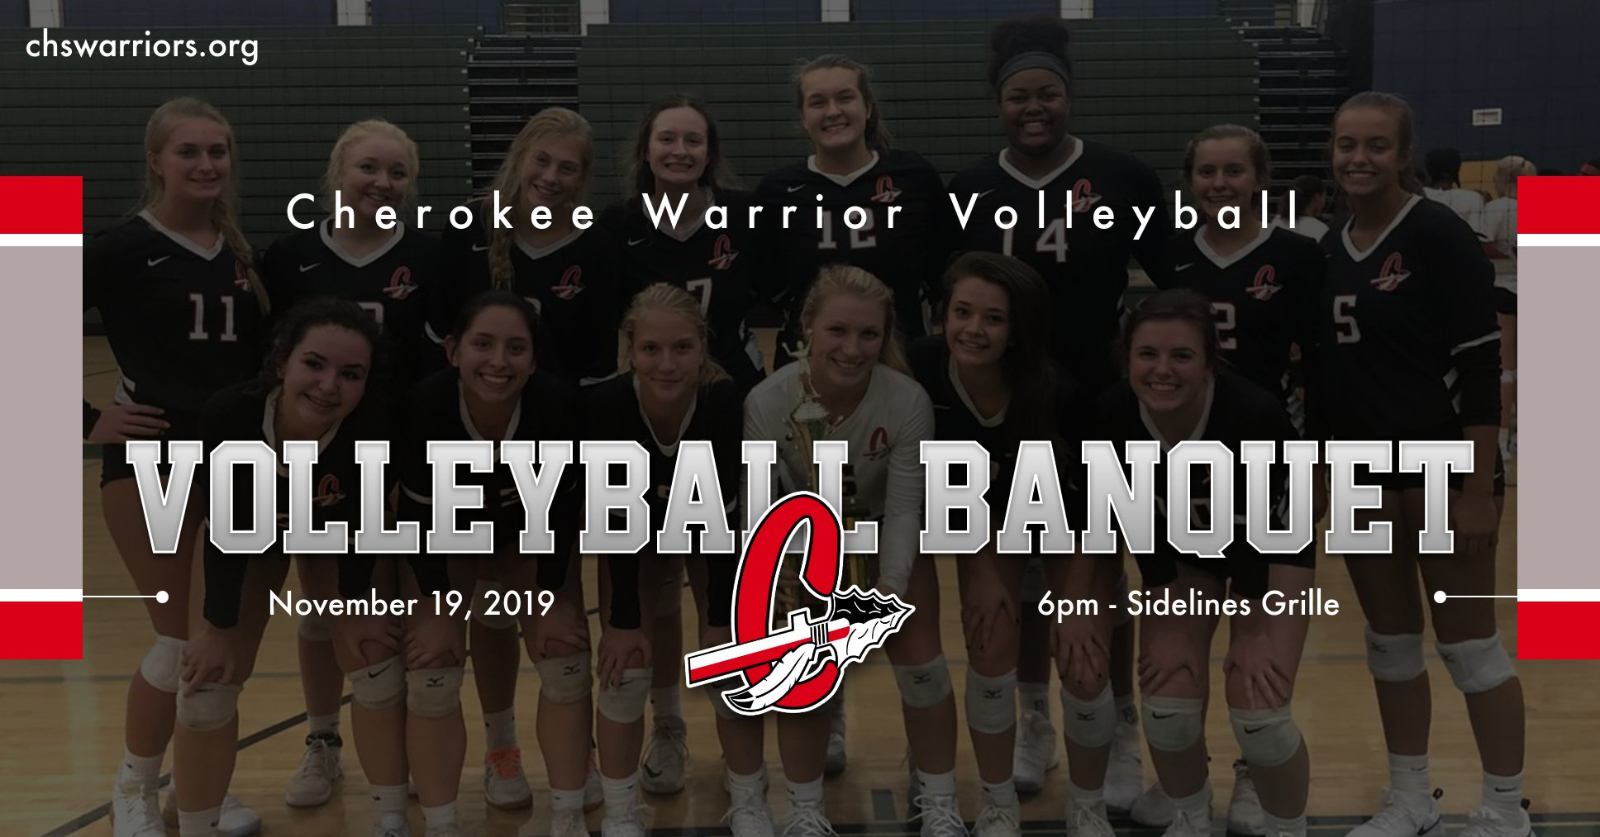 CHS Warrior Volleyball Banquet – RSVP